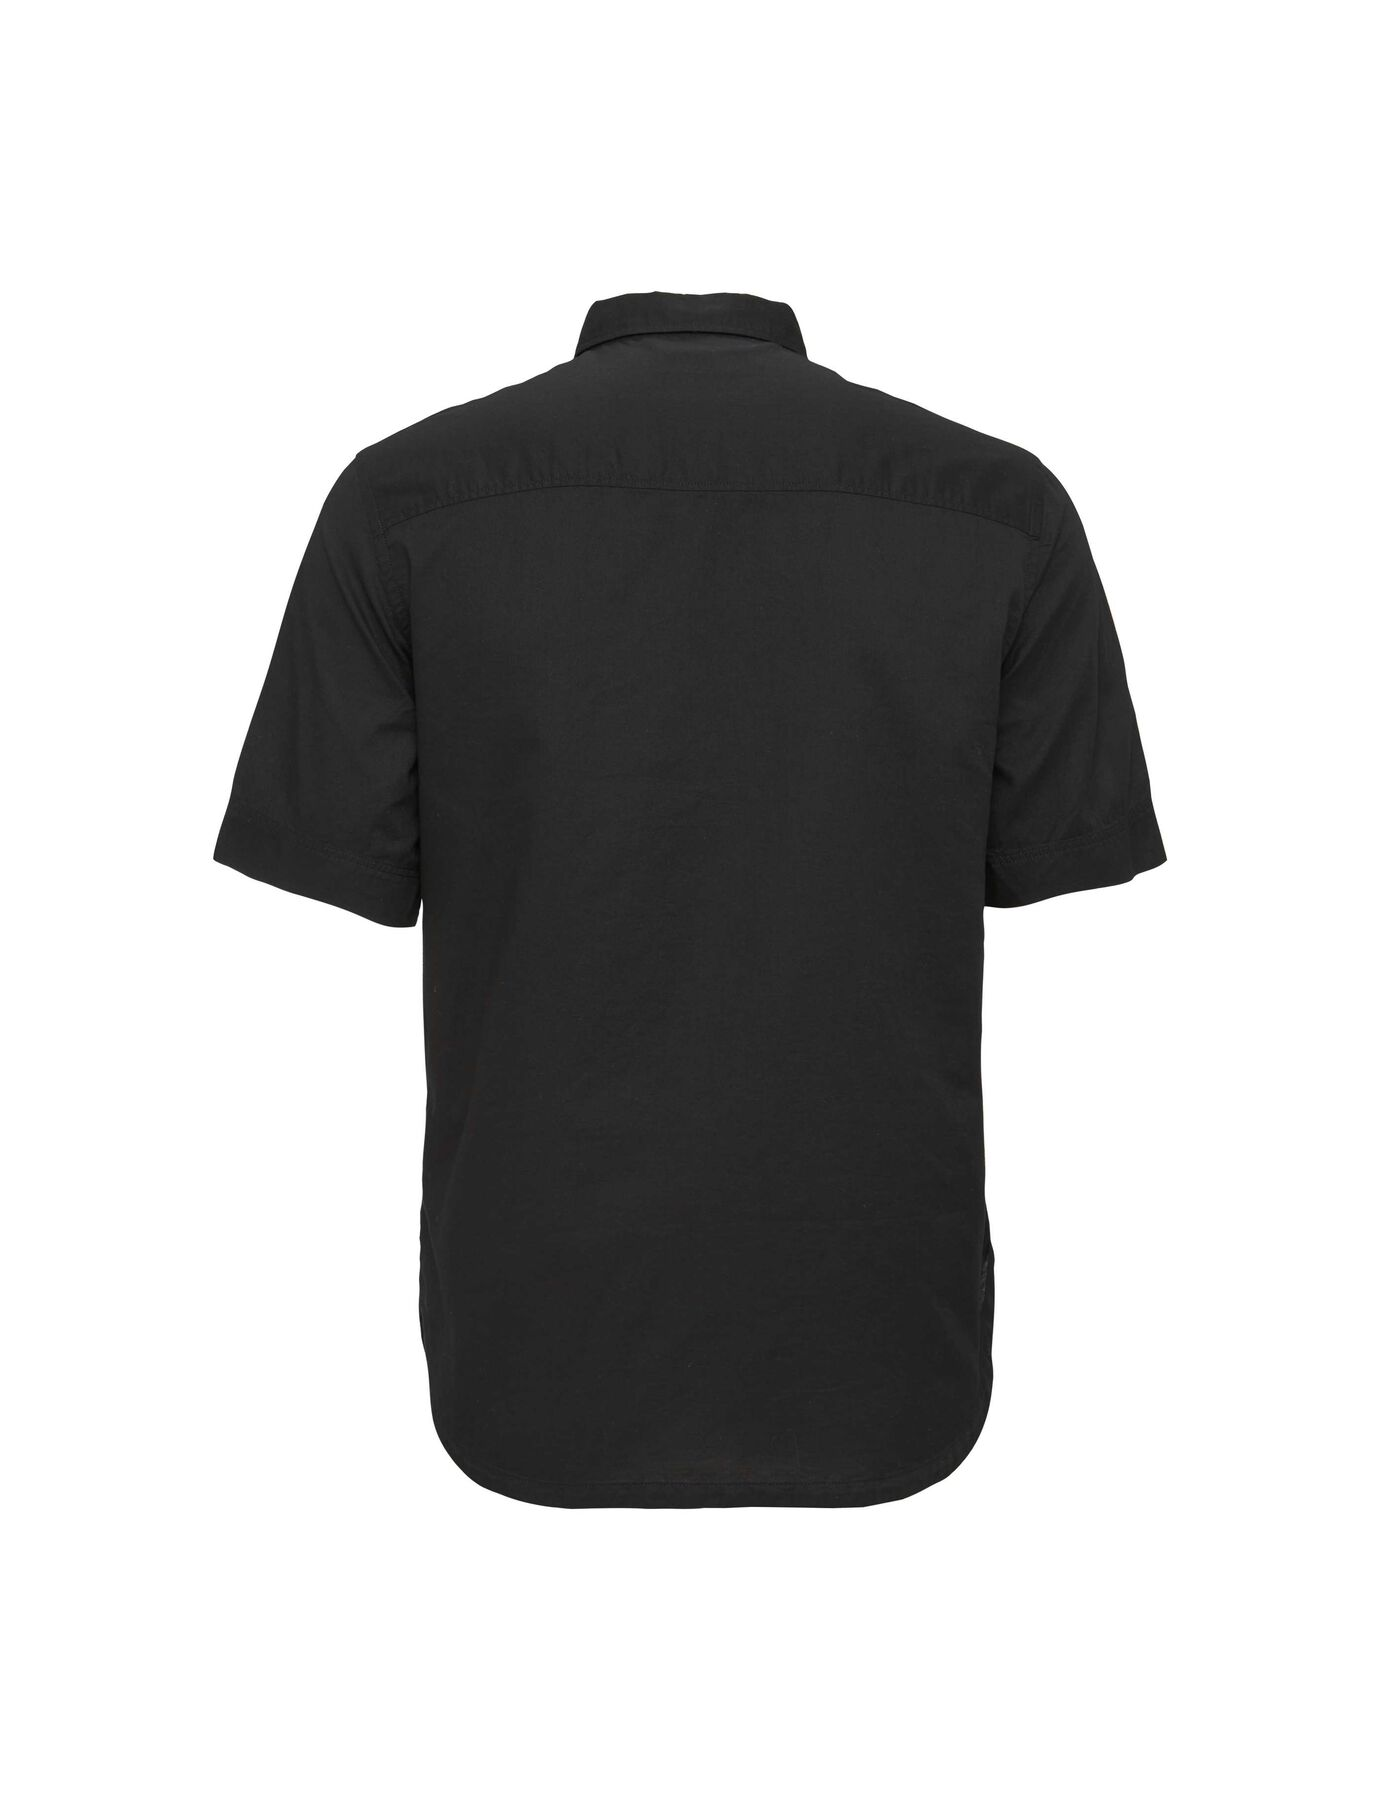 Relax Shirt in Black from Tiger of Sweden